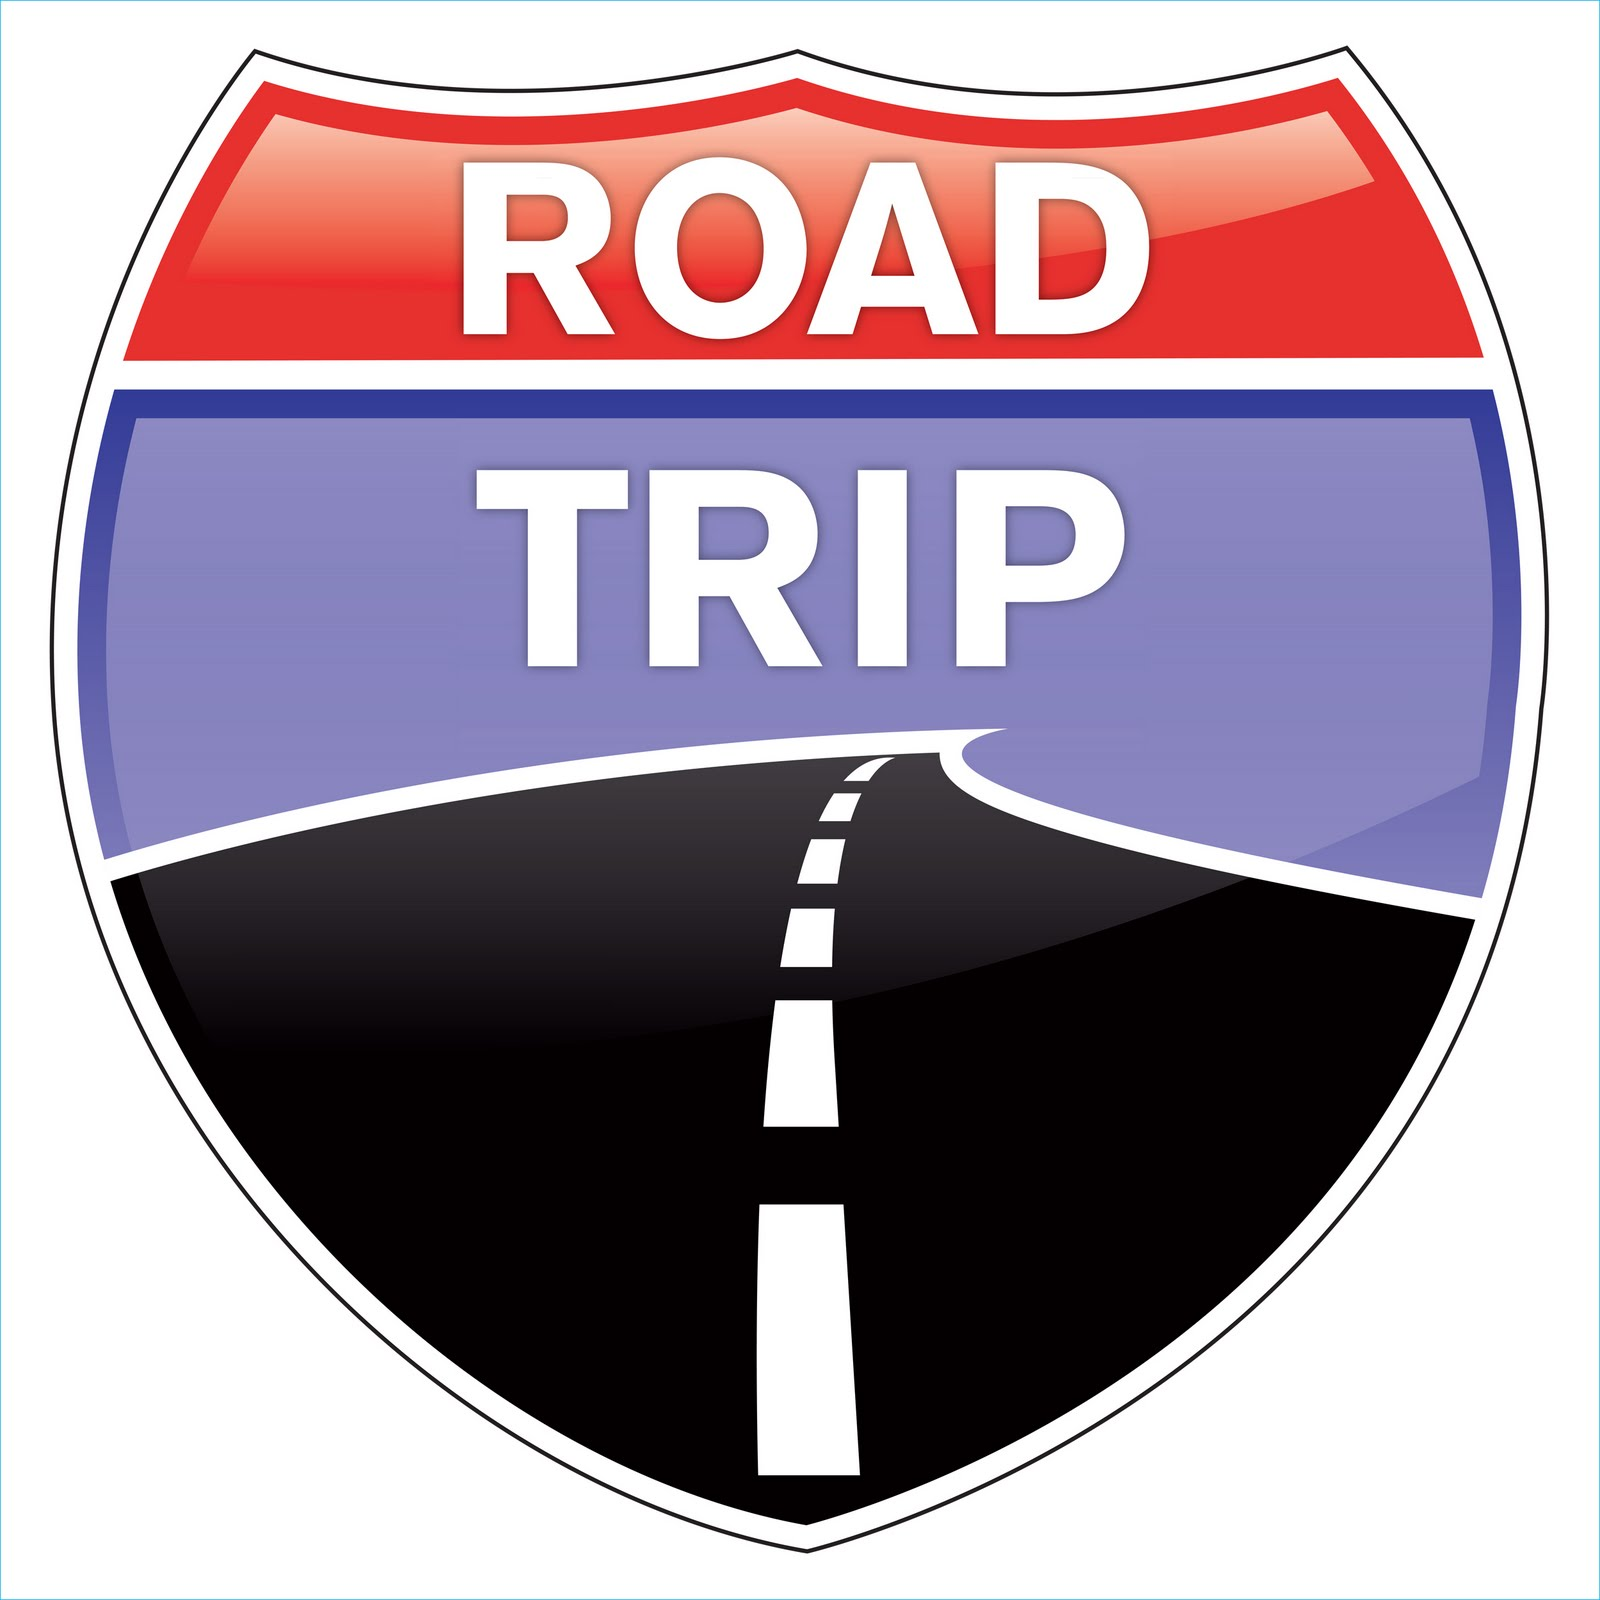 Quilt Basket Blog: Road Trip!